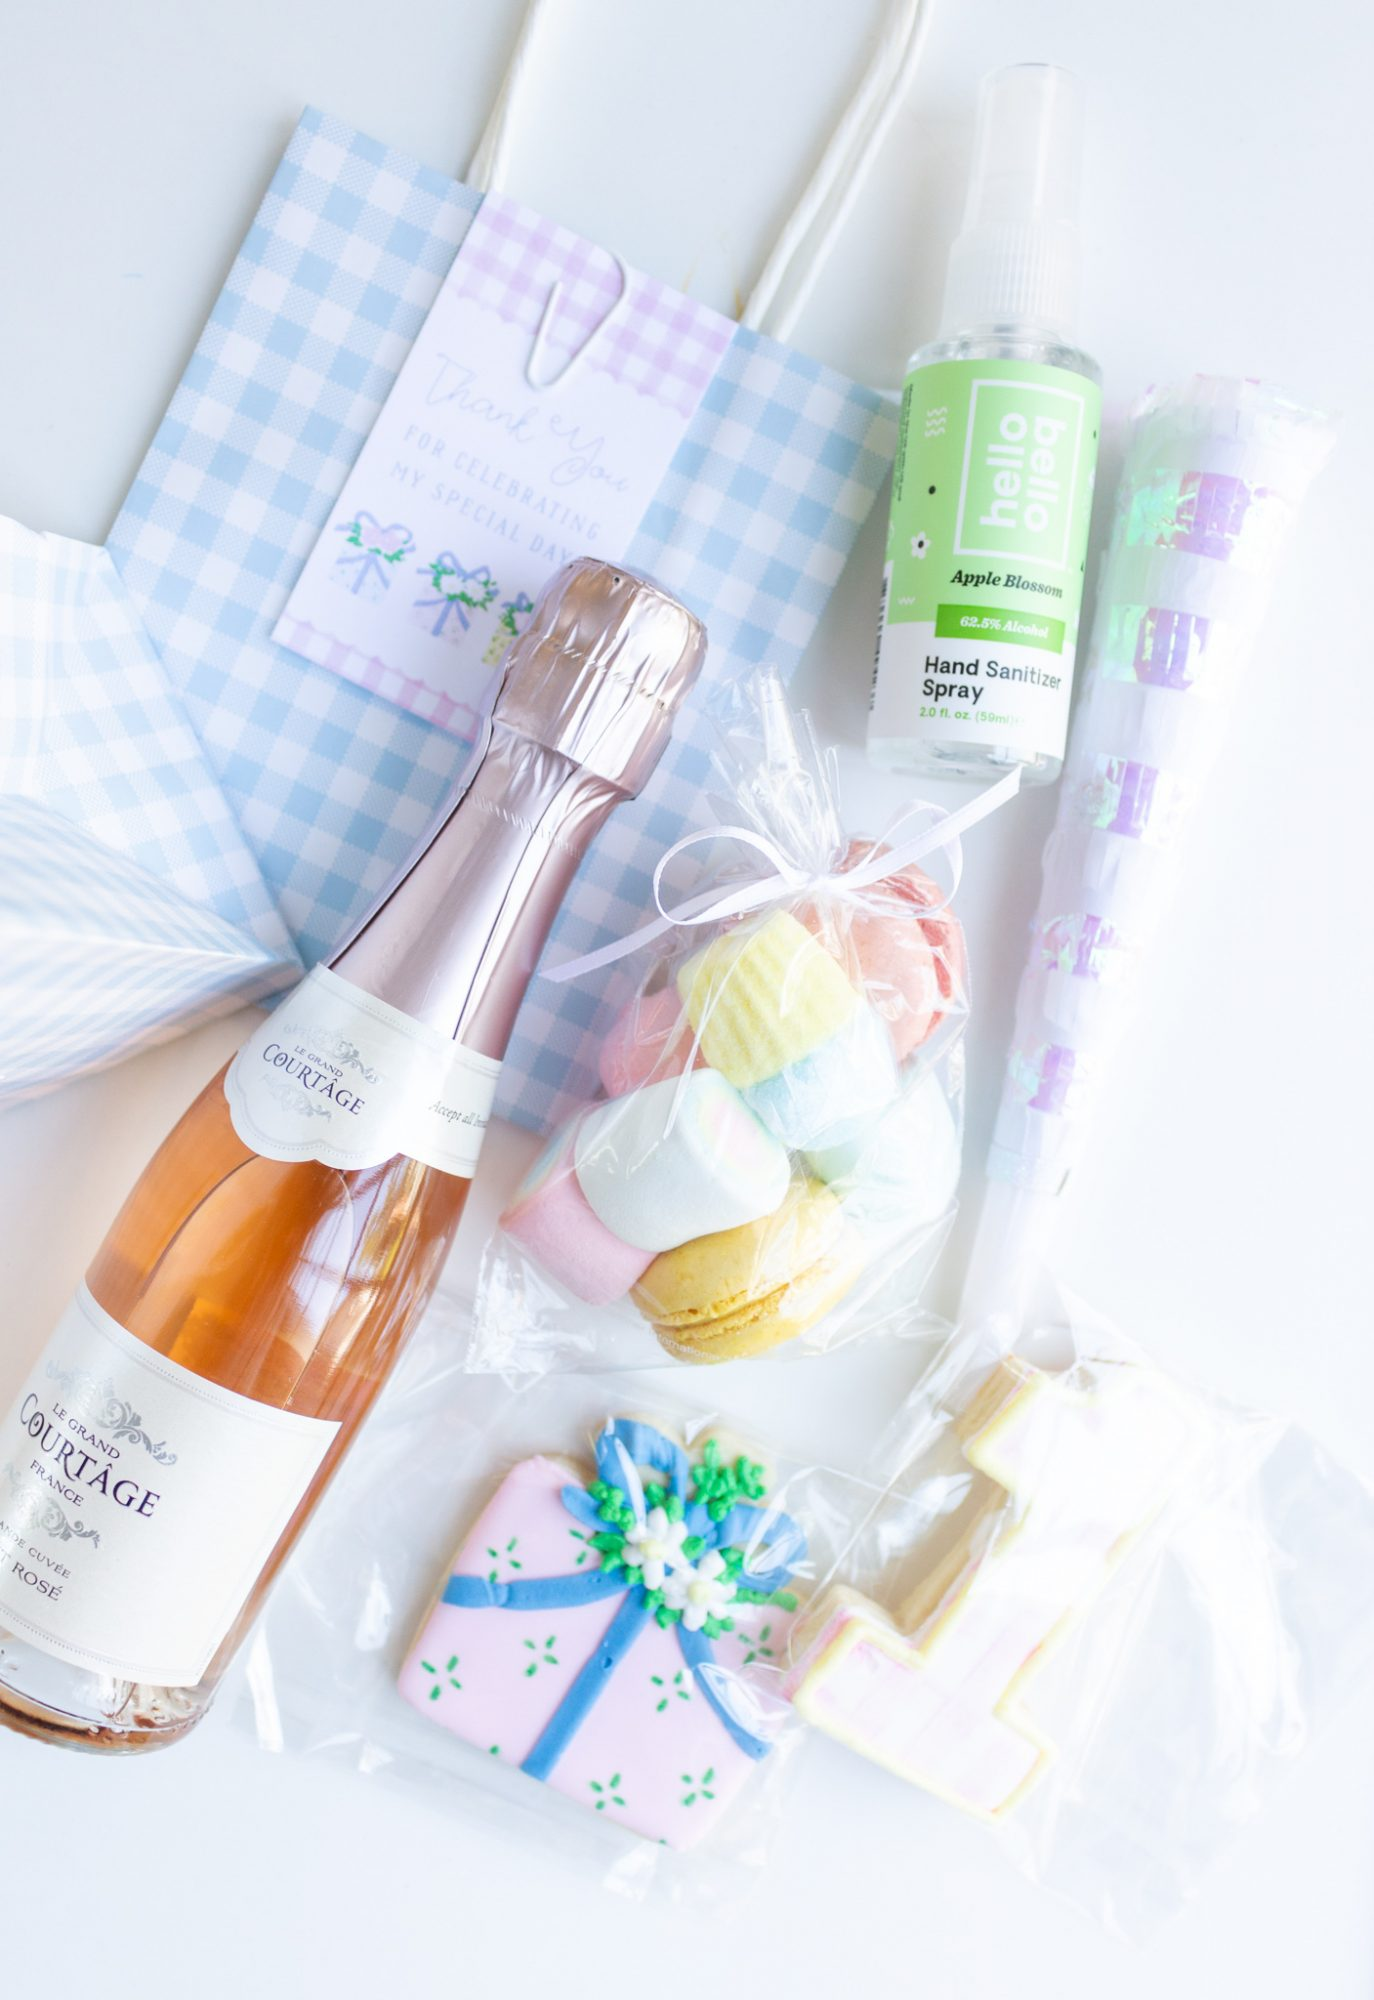 bag of party favors for baby Claire's virtual birthday cake smash